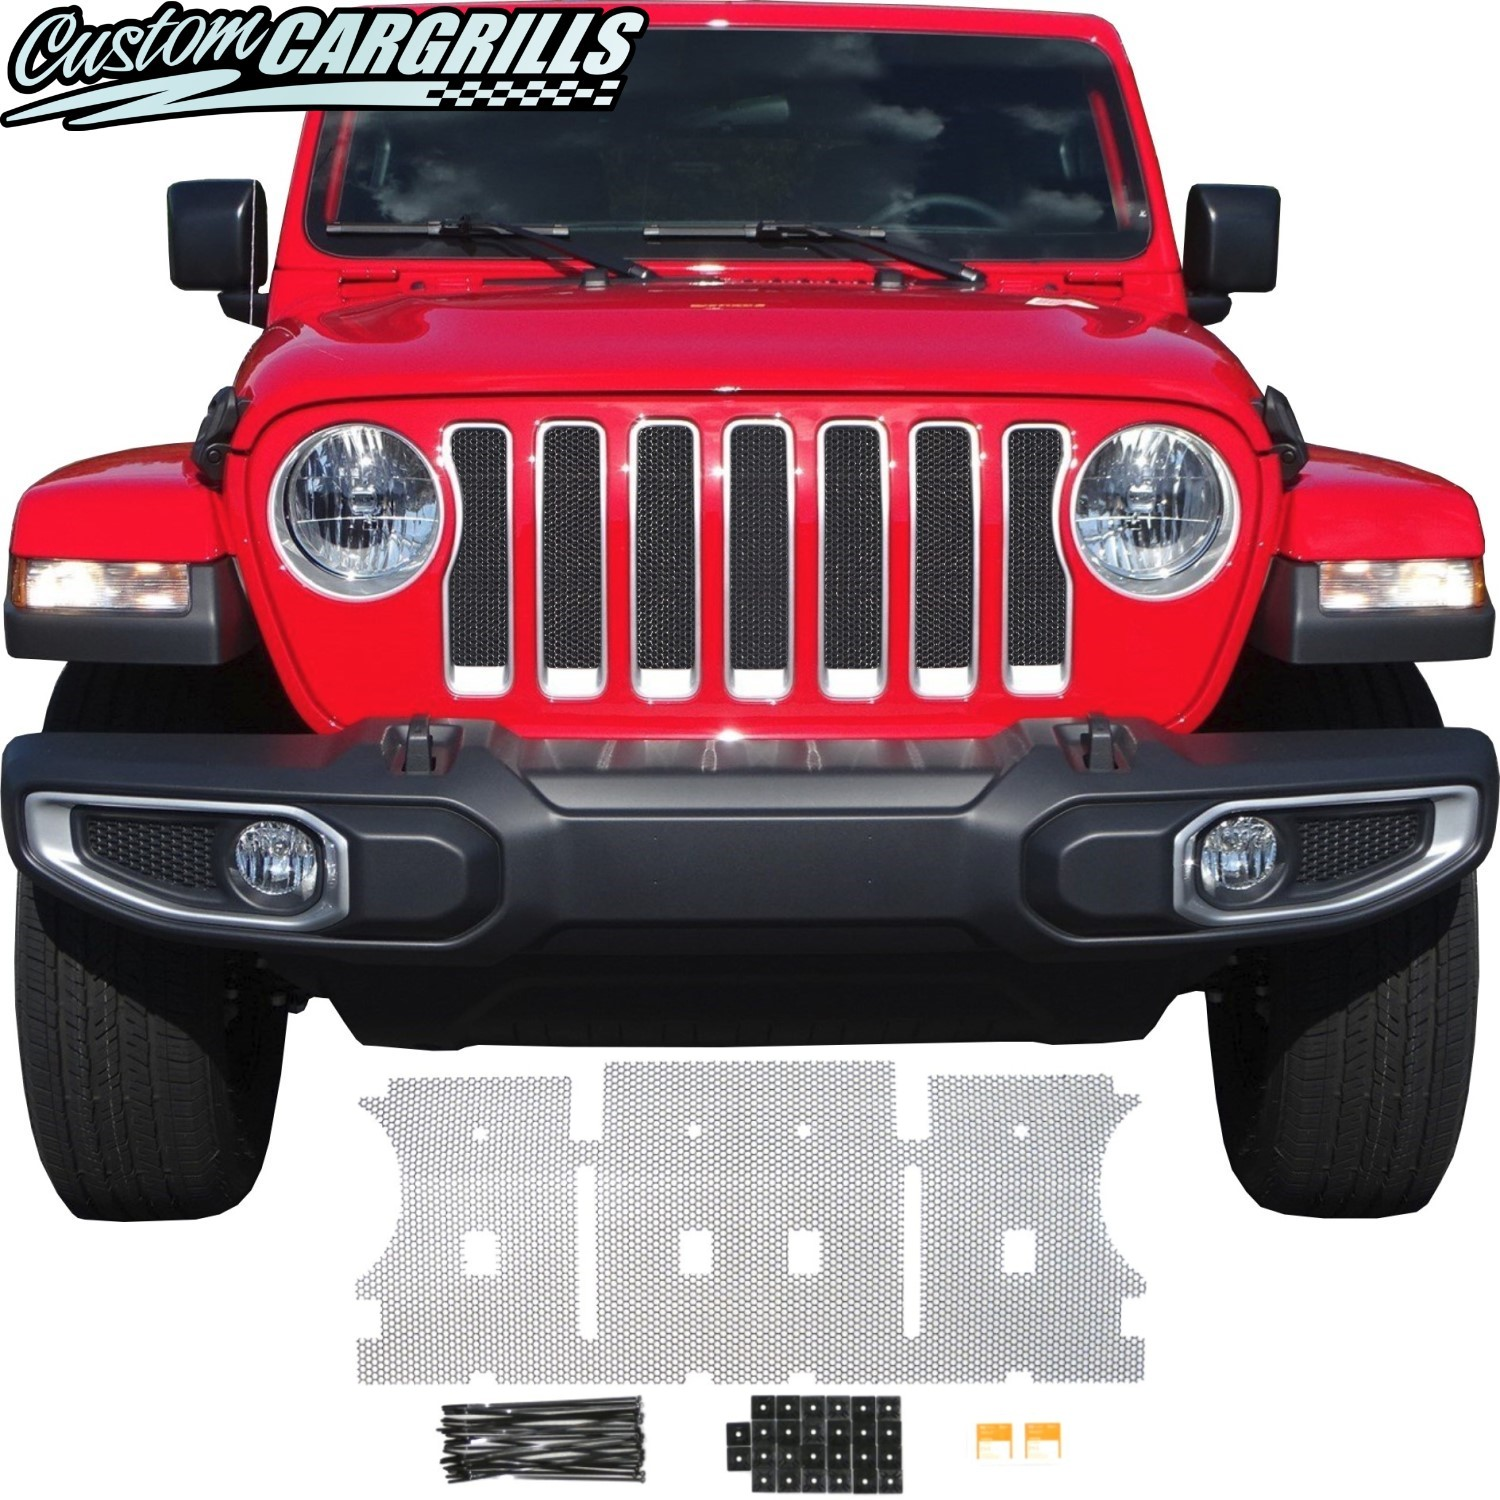 Mesh Grill Kit For 2018 - 2019 Jeep Wrangler JL